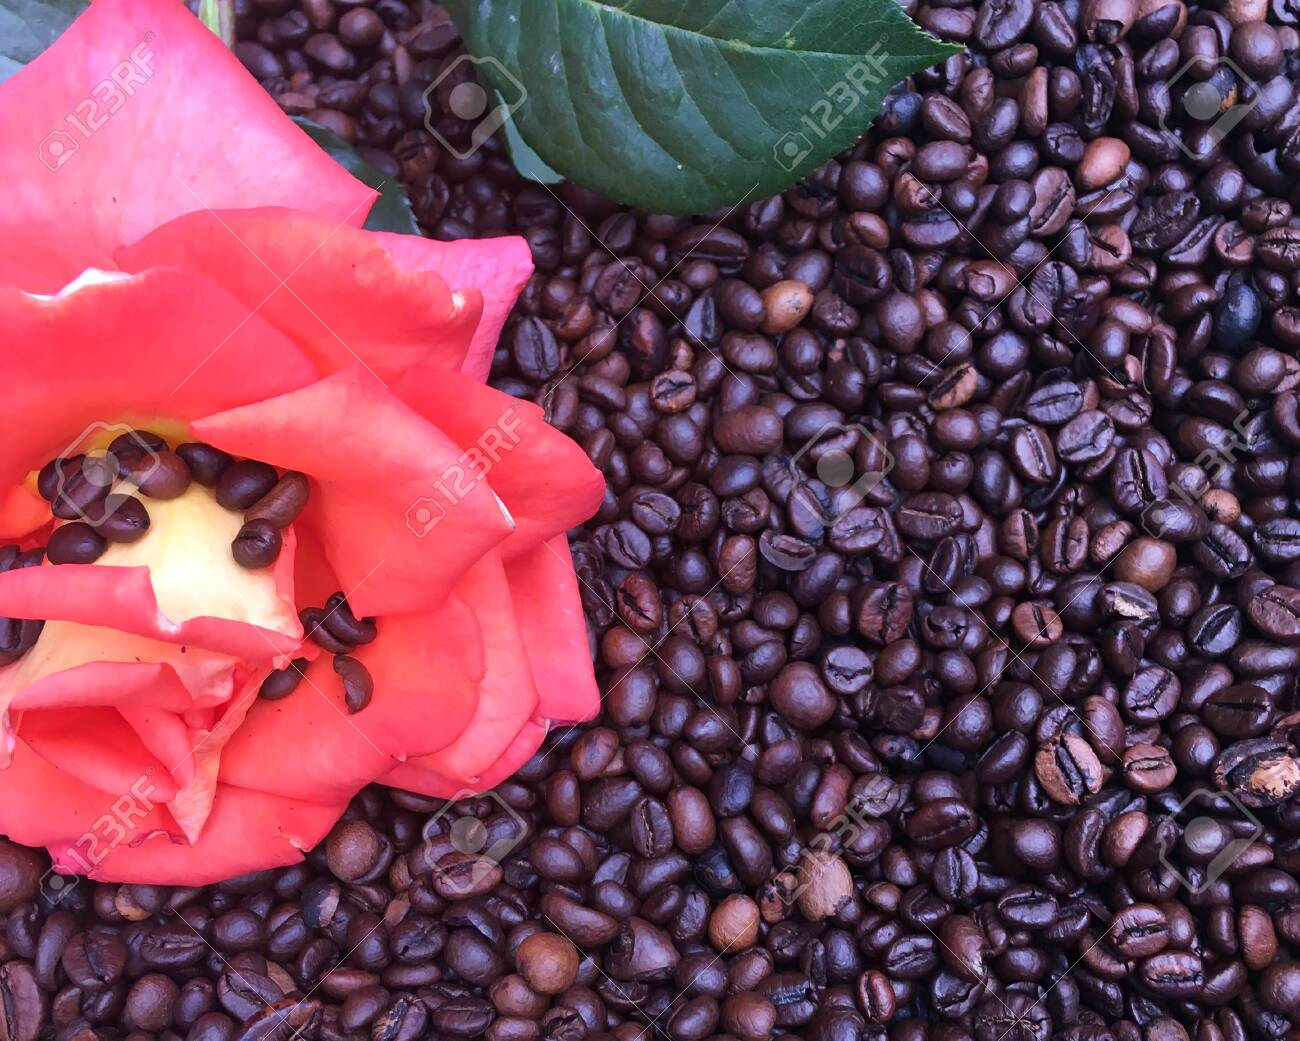 a bunch of coffee beans and a red rose are lying on the table. Coffee texture and background image. - 148013014